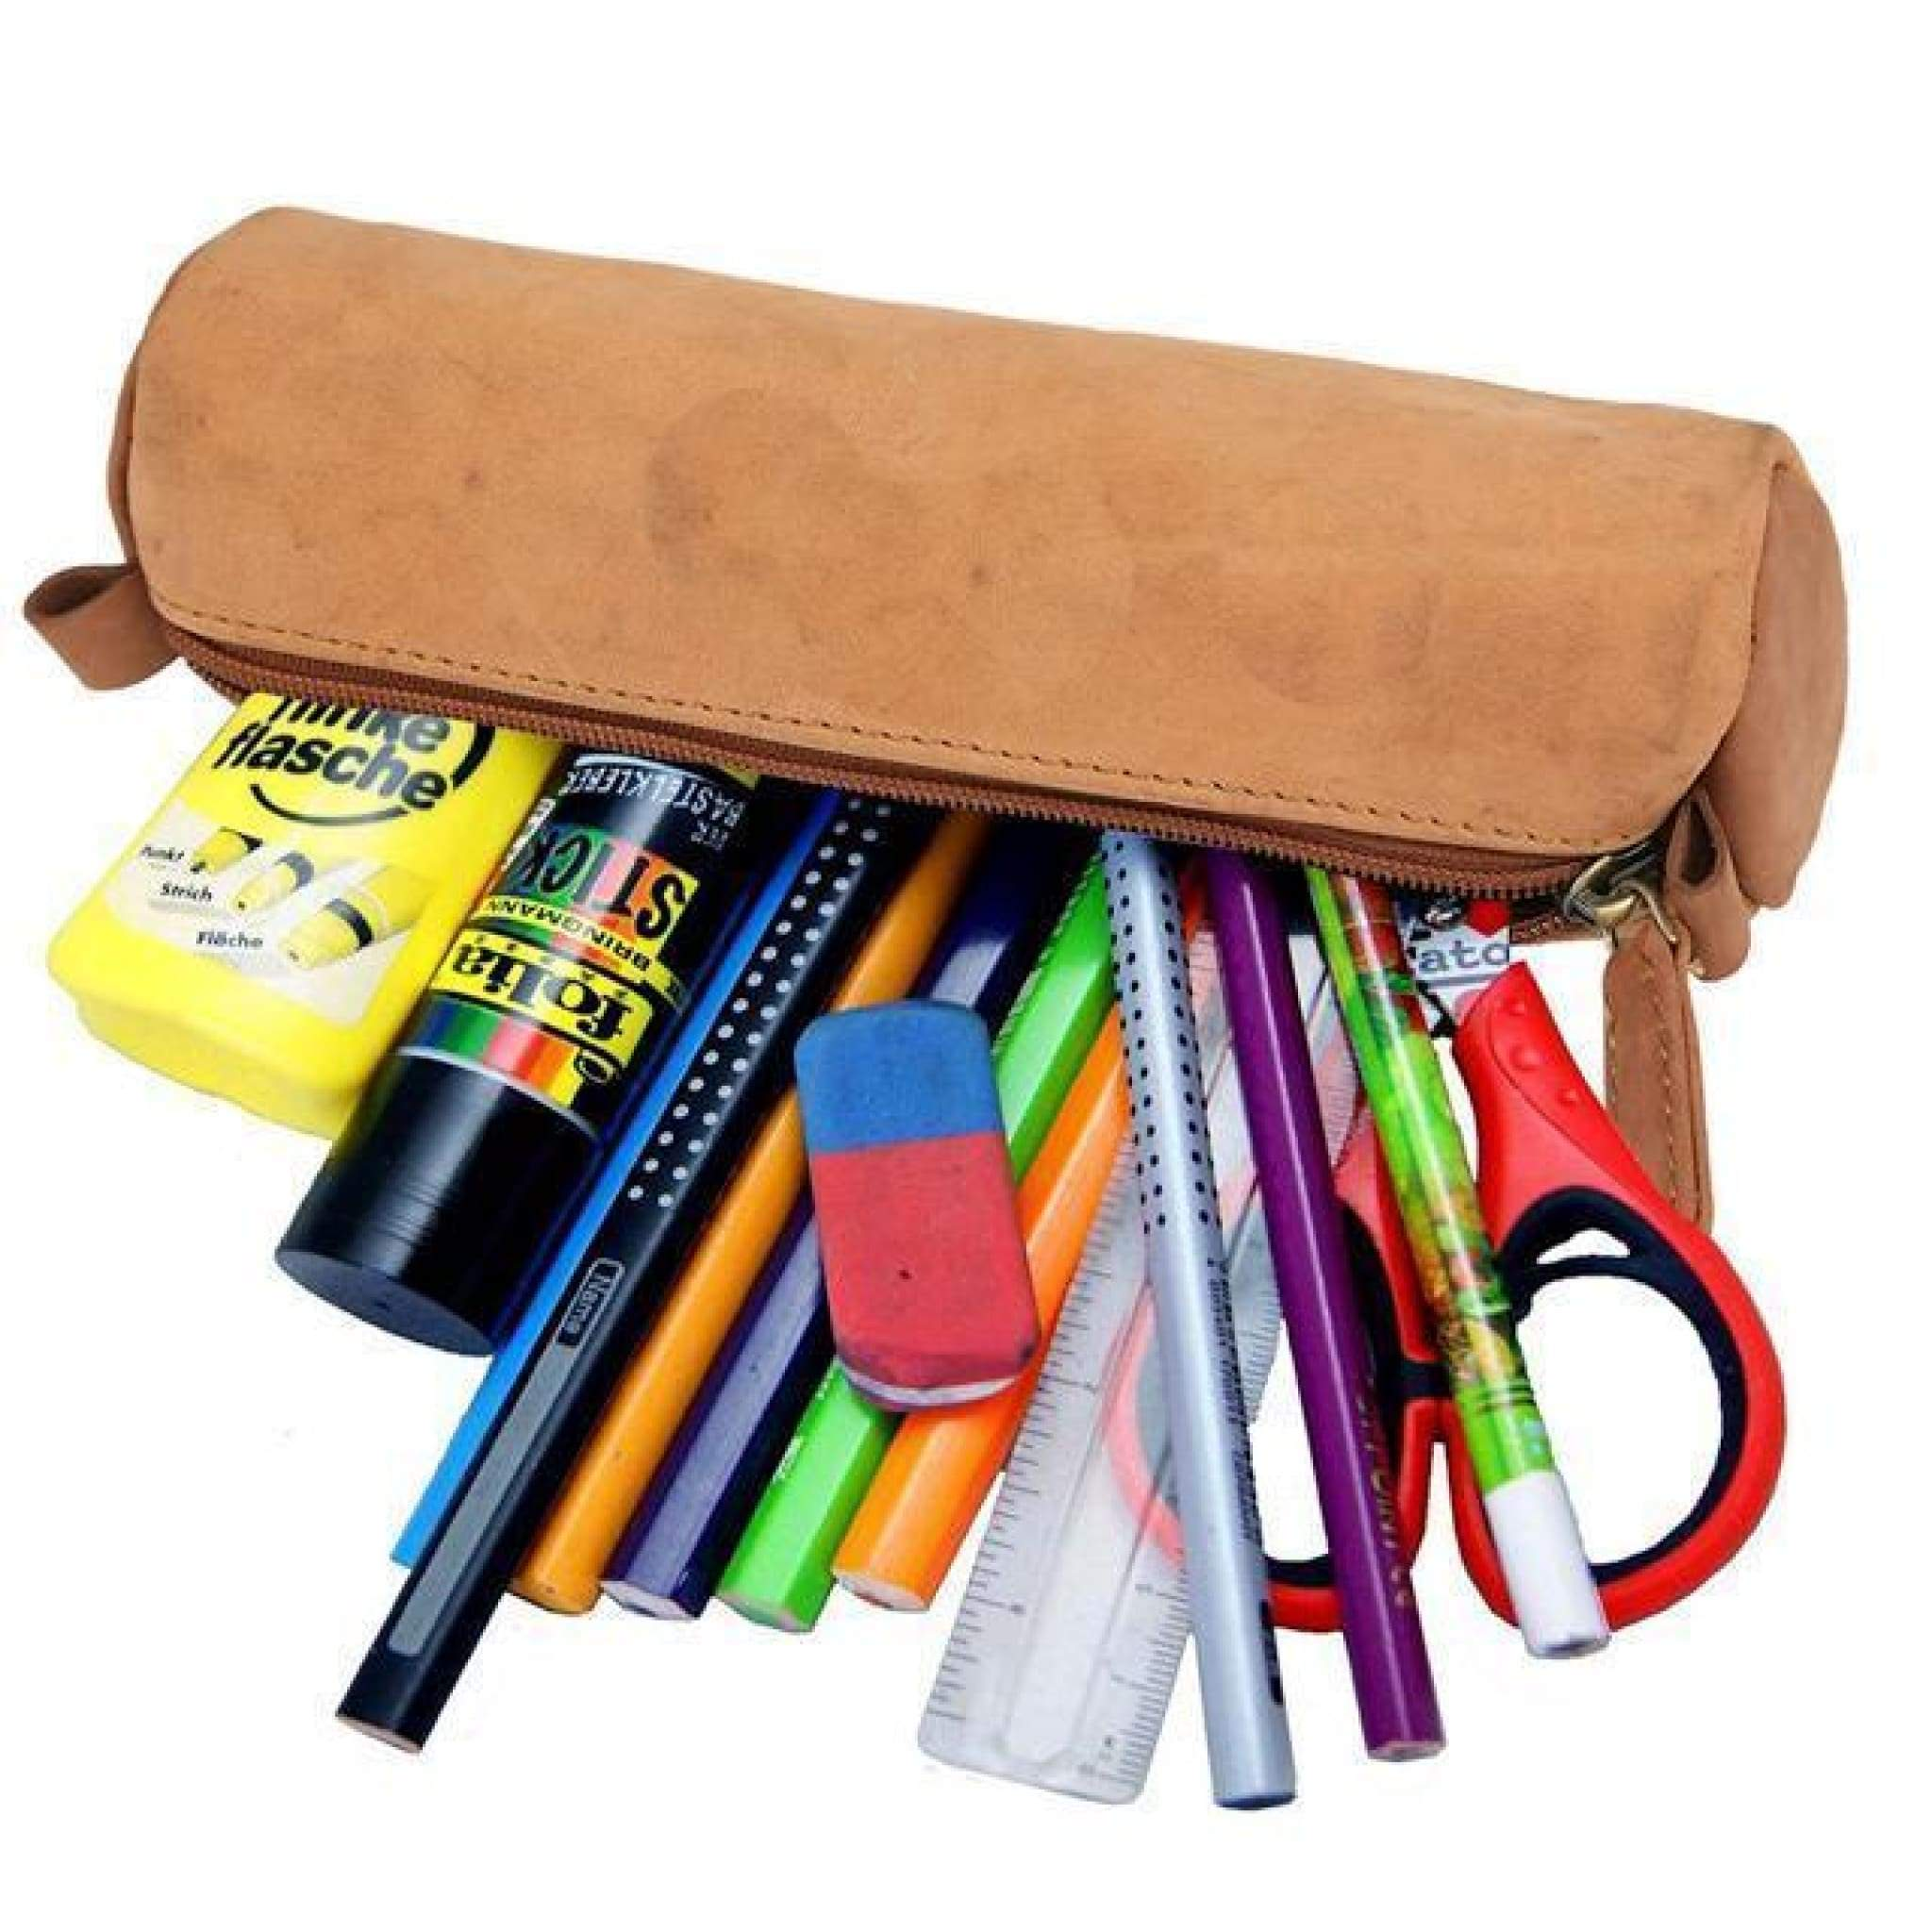 Rusthide | Vintage Handmade Leather Pencil Case Stationery Case / Free Shipping: Rusthide.com